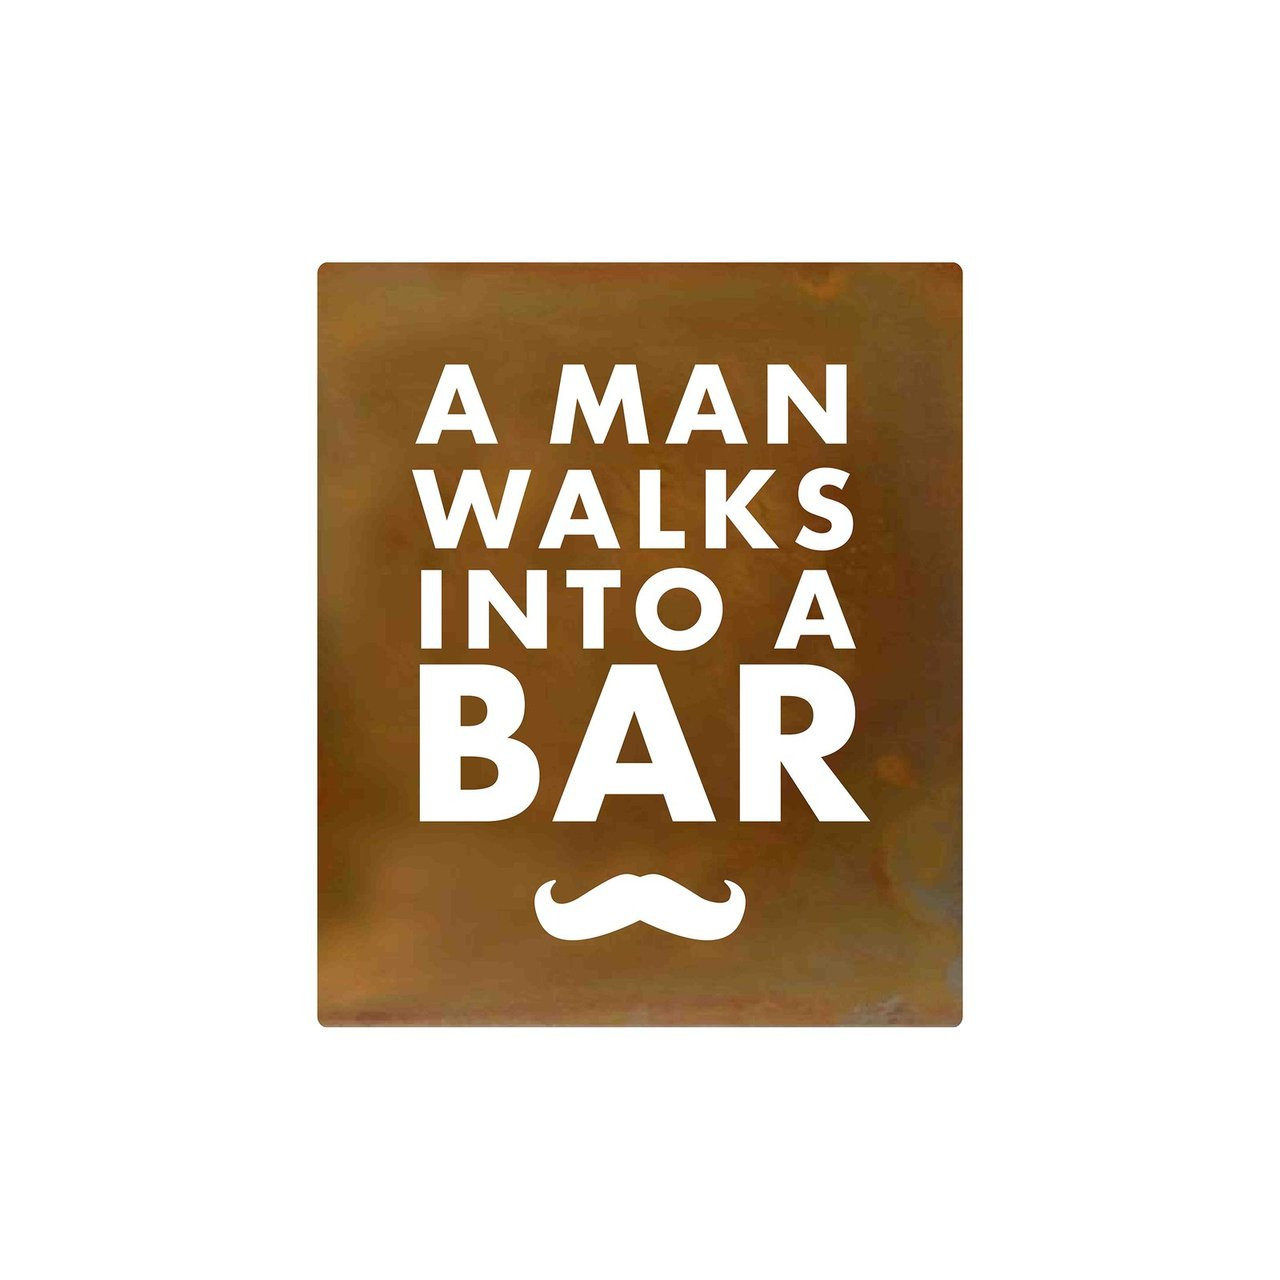 A Man Walks Into a Bar Hand-Crafted Metal Wall Art